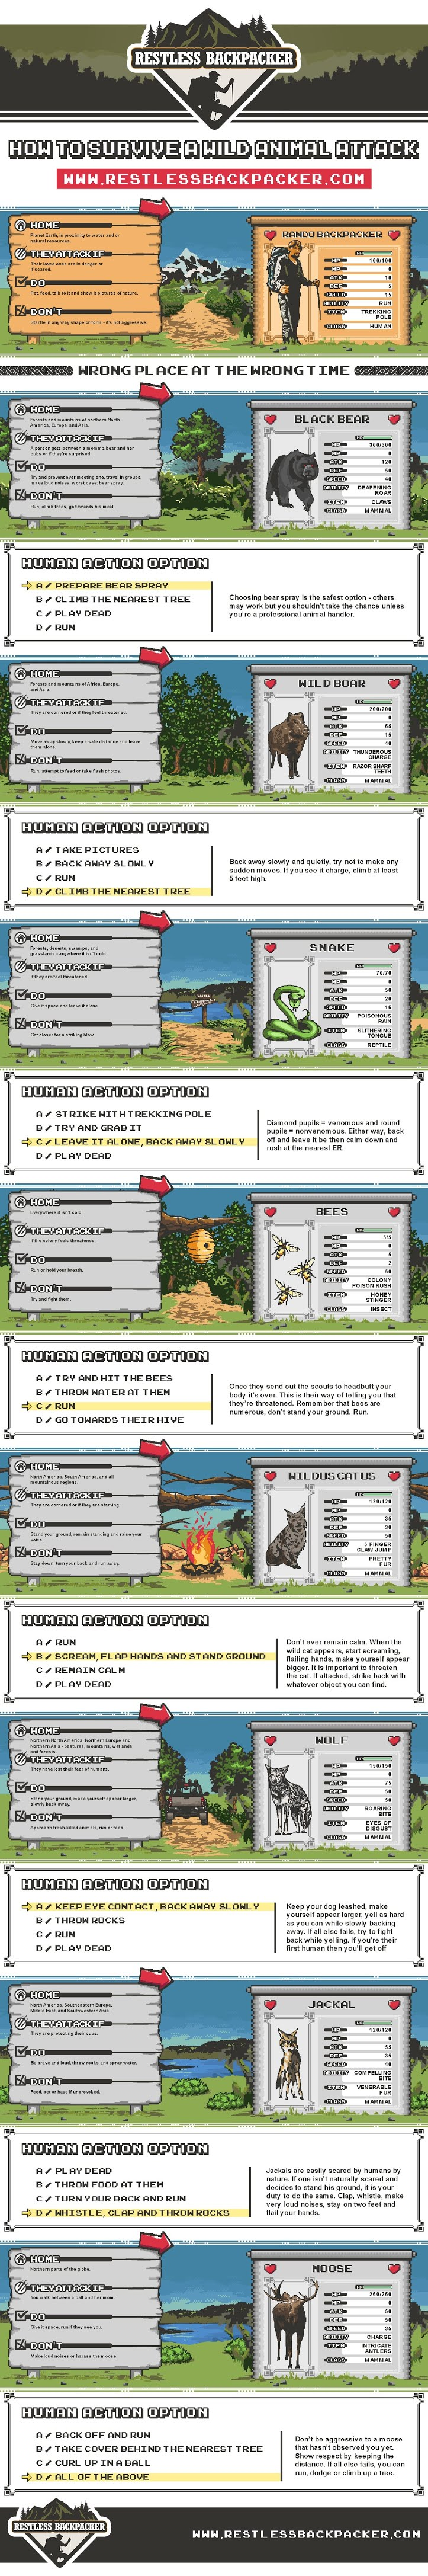 How to Survive an Animal Attack and Tell the Story #infographic